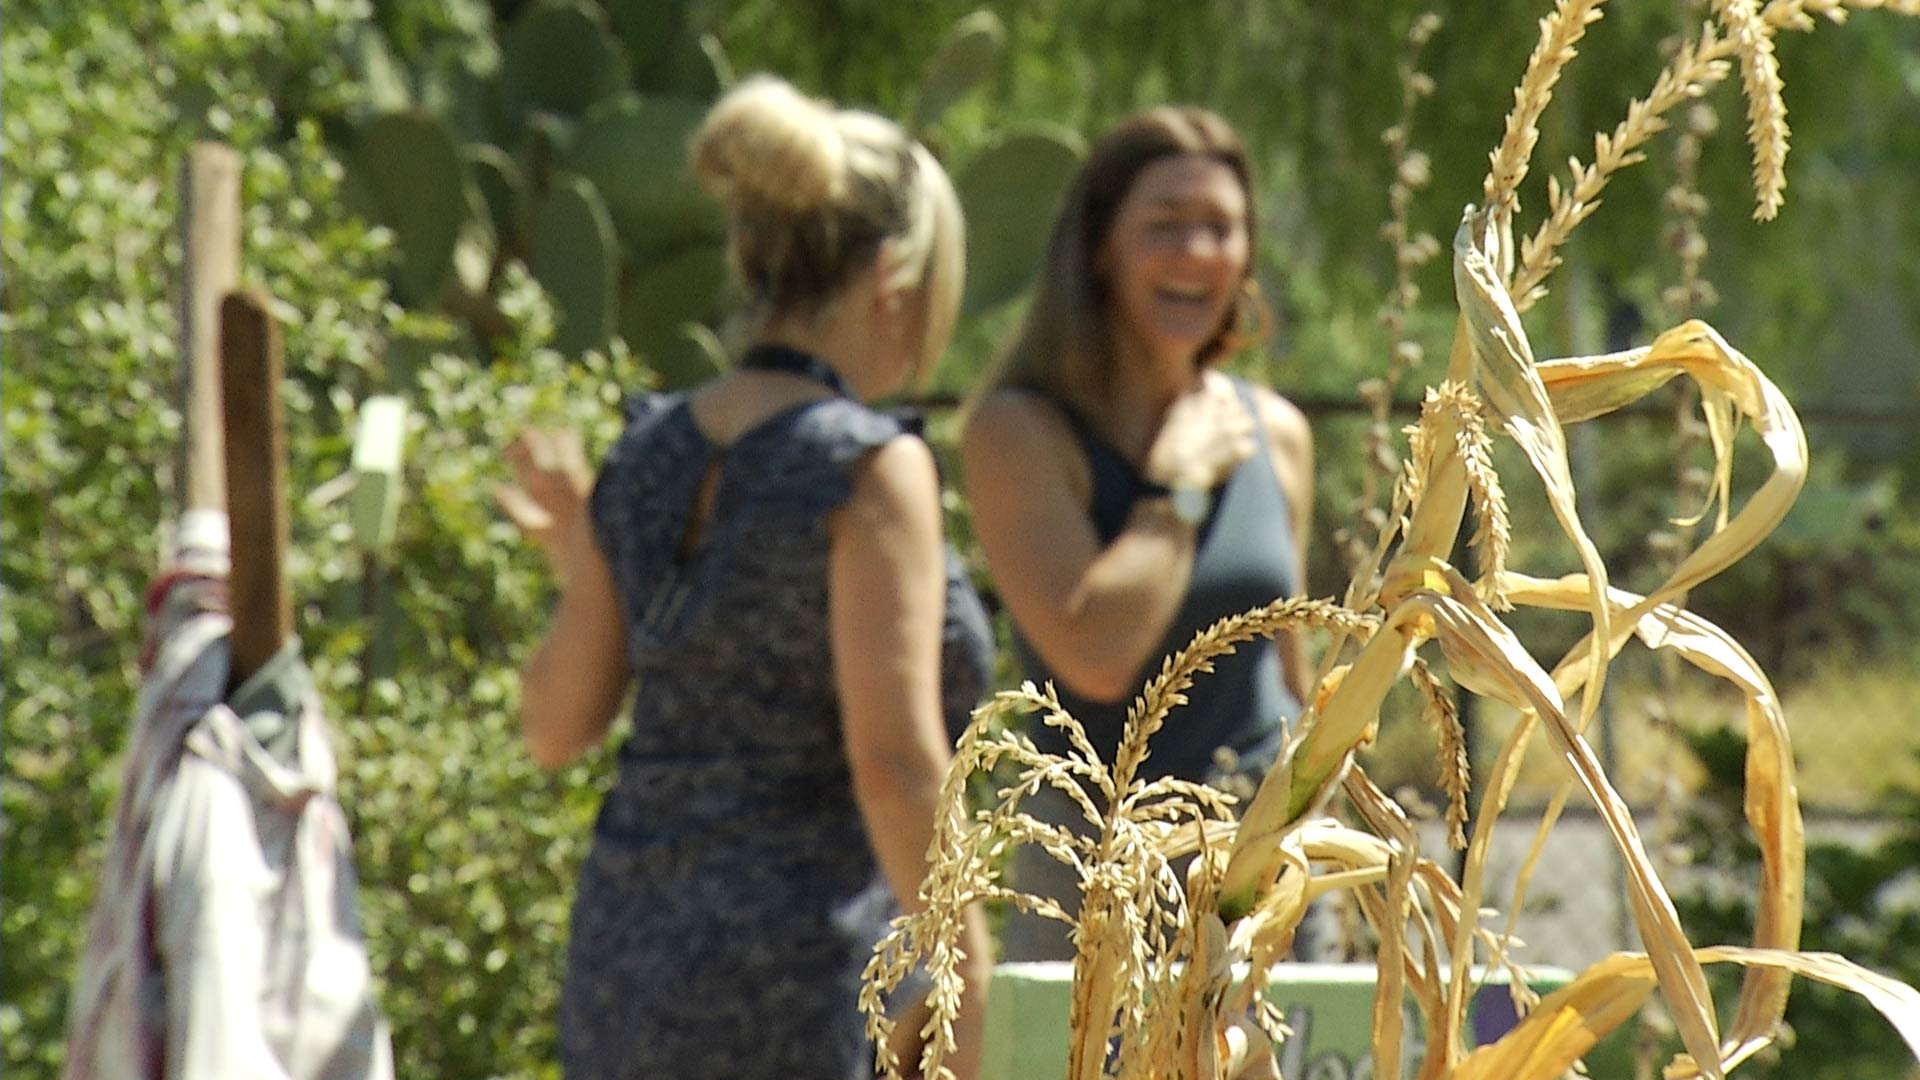 Rani Olson, right, works to raise food literacy in Tucson's schools.